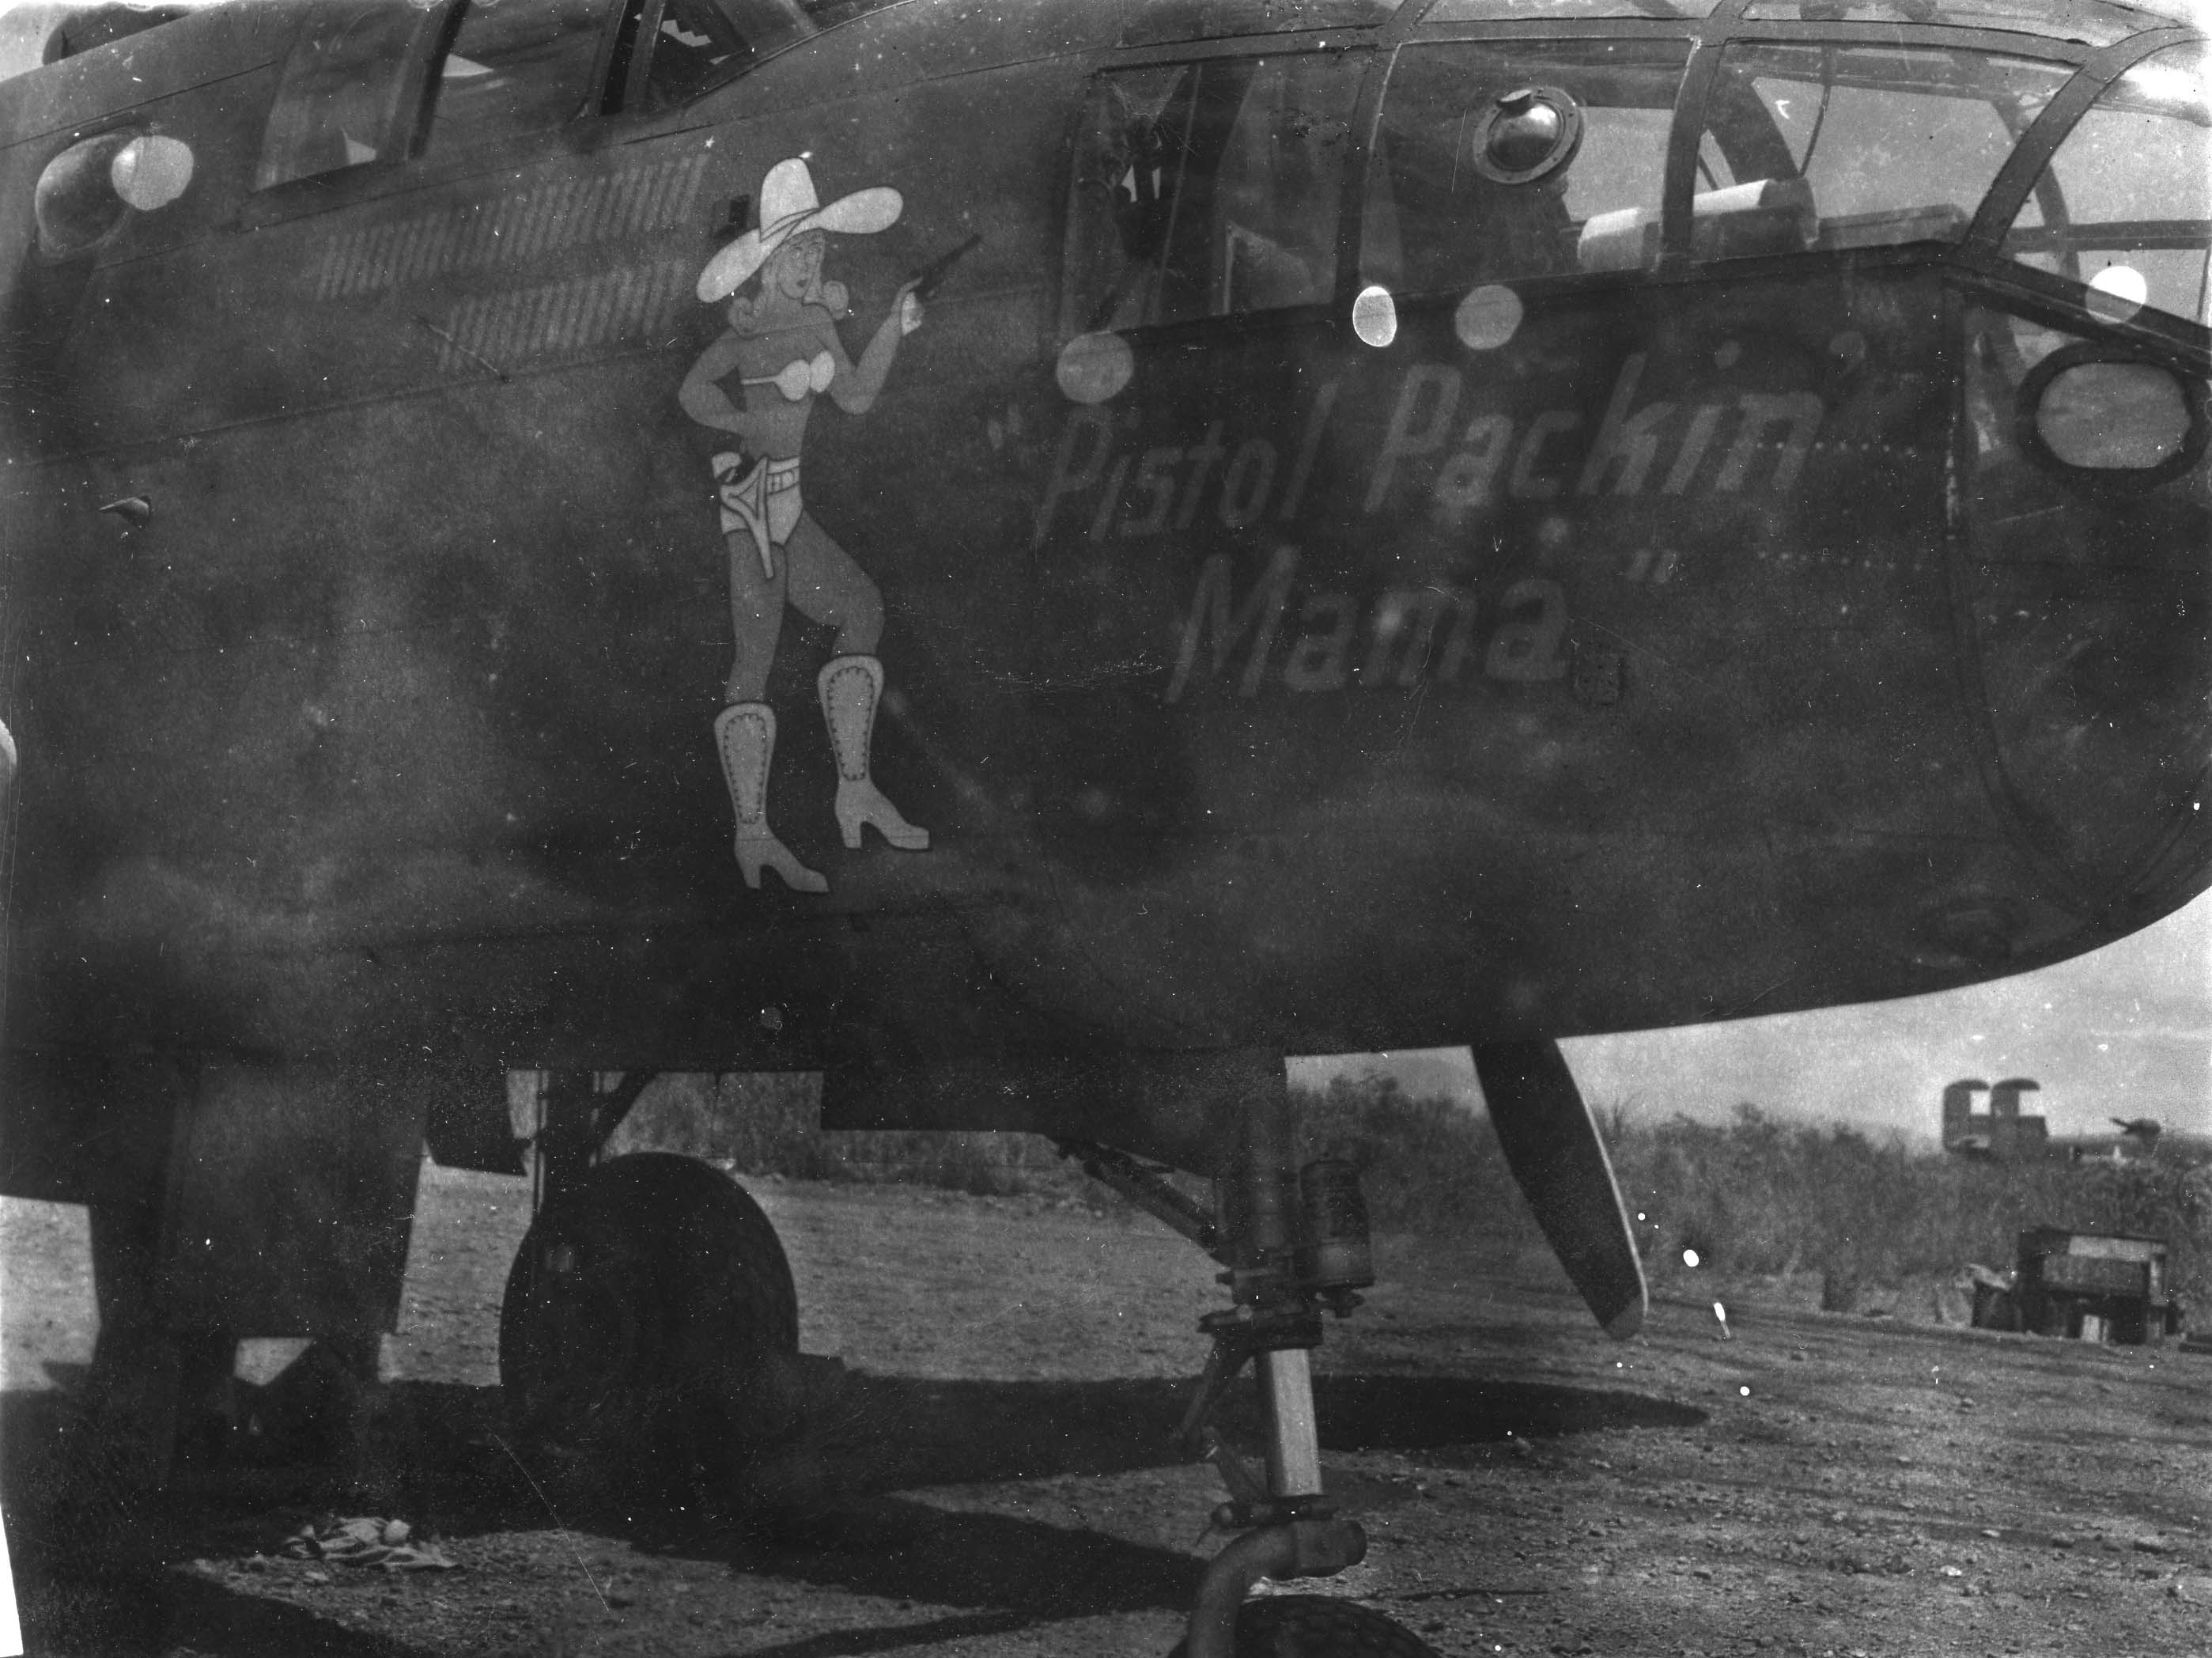 Pistol Packin Mama - B25 - 22nd Bomb Group - 2nd Squadron - Serial #41-30764 - Sharpe 26 (Thomas Sharpe Collection)